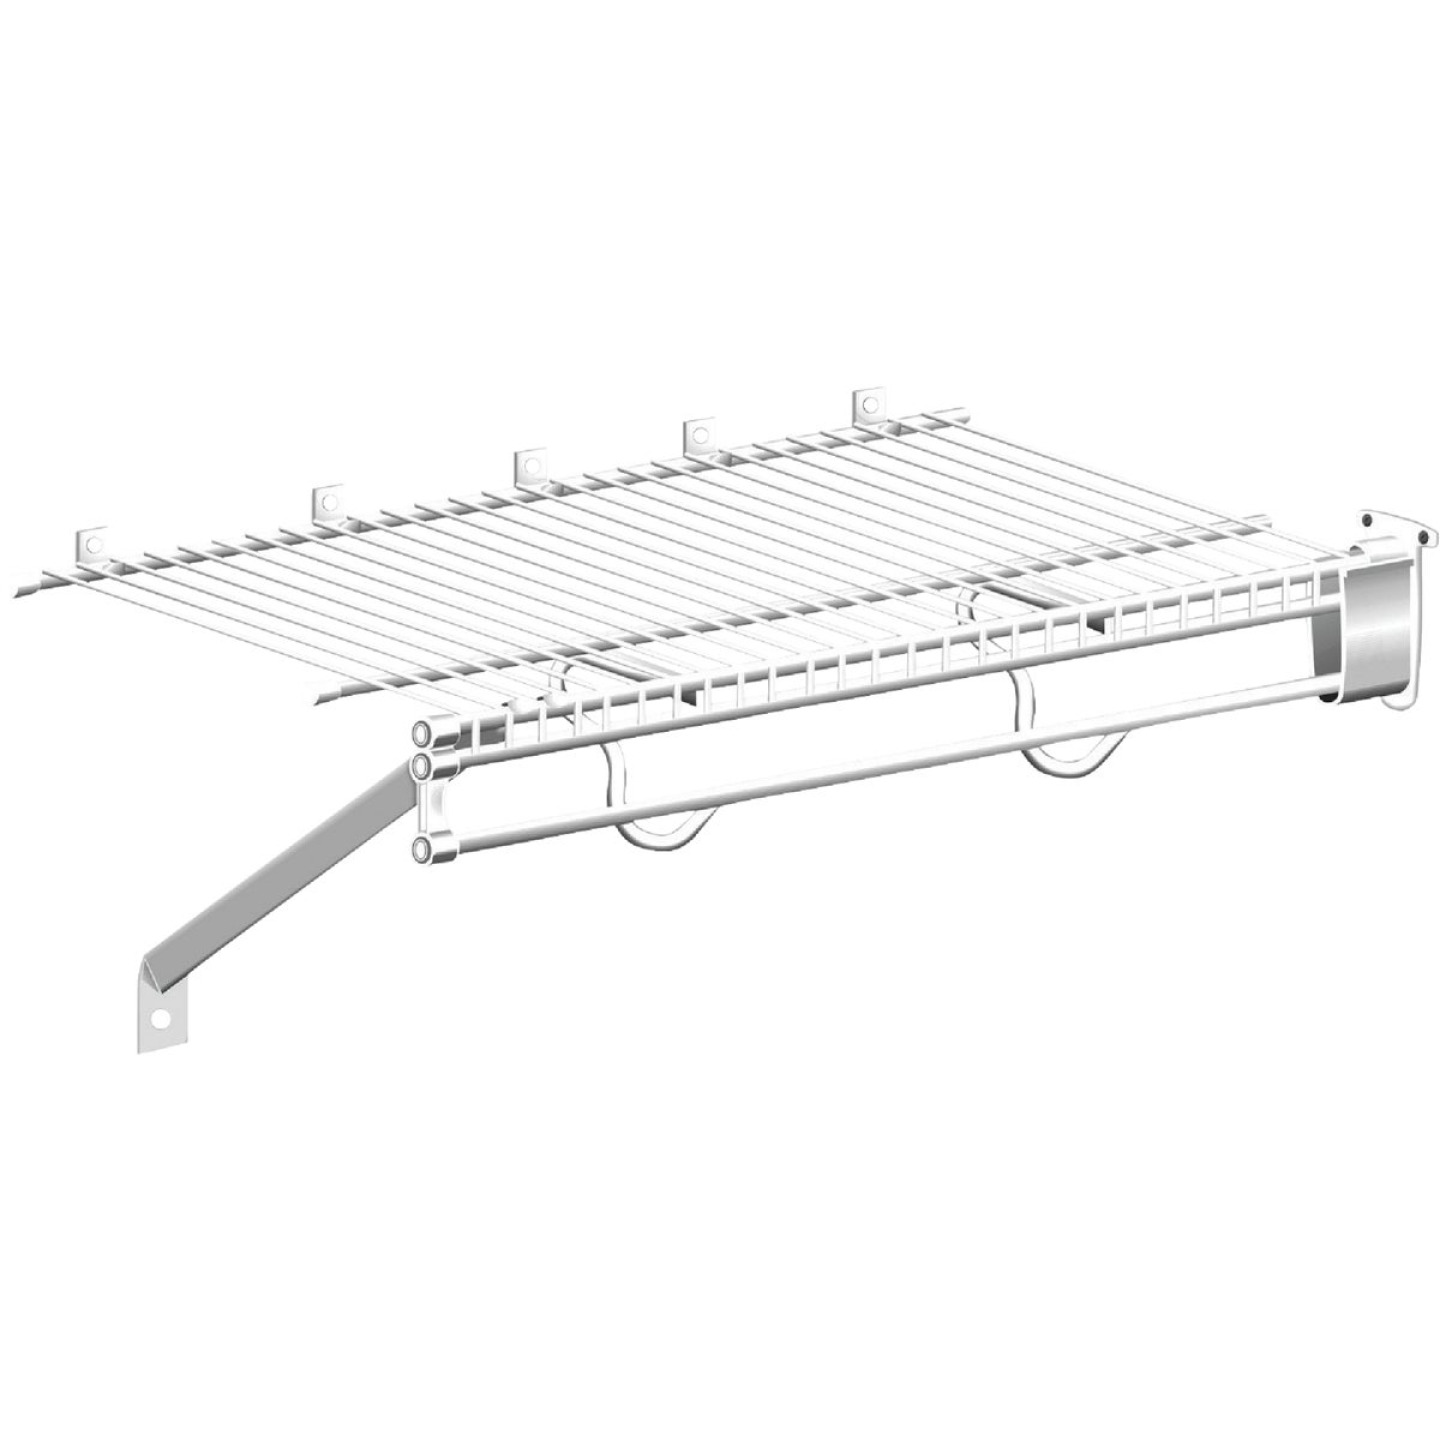 ClosetMaid TotalSlide 12 Ft. W. x 12 In. D. Contractor Pack Ventilated Wire Shelf & Rod, White (6-Pack) Image 3